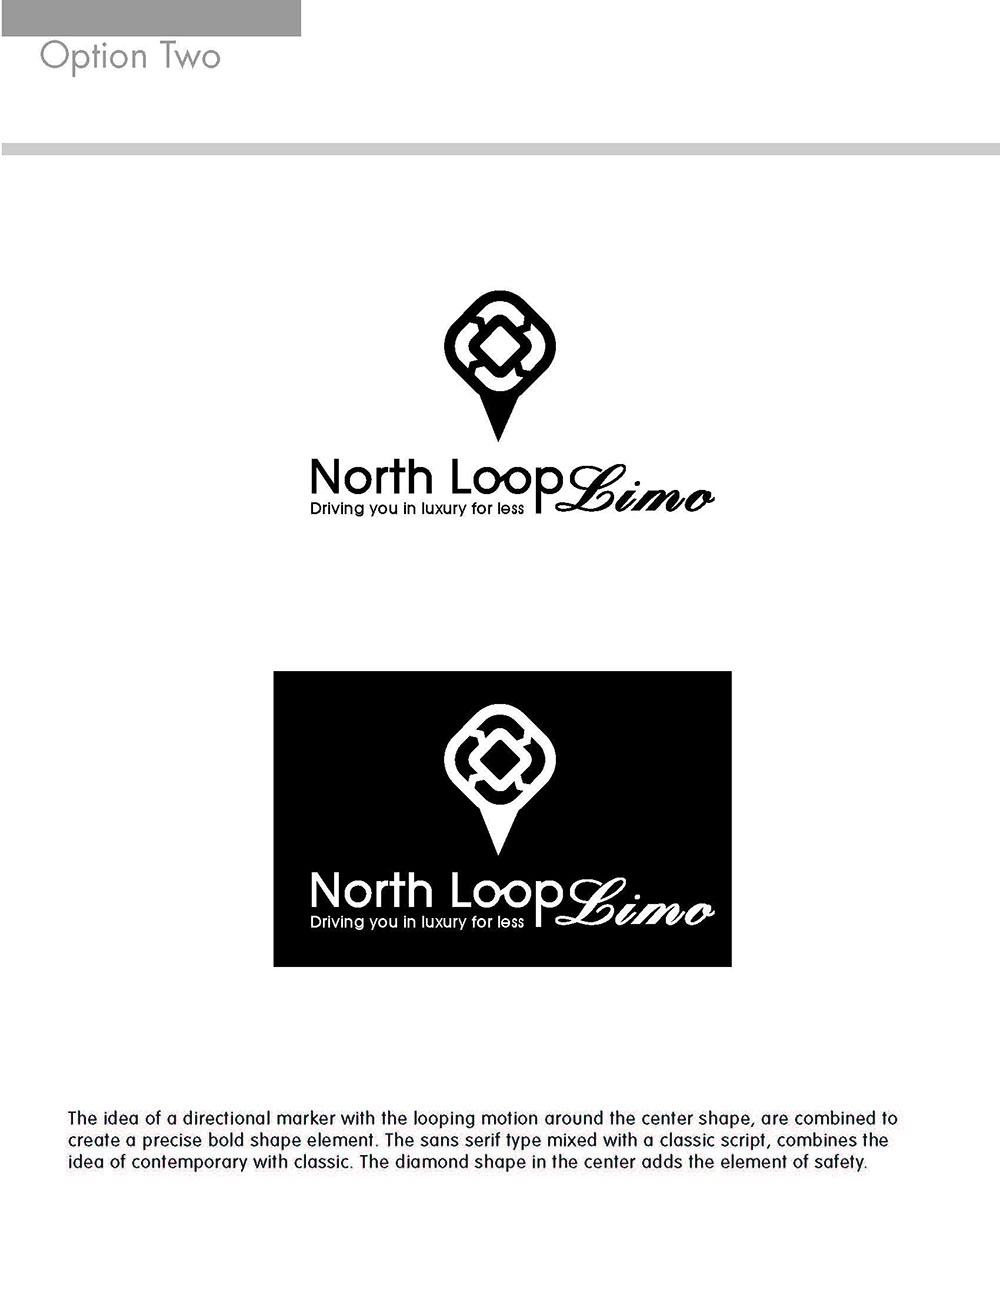 North Loop Limo Black and White Logo Concept